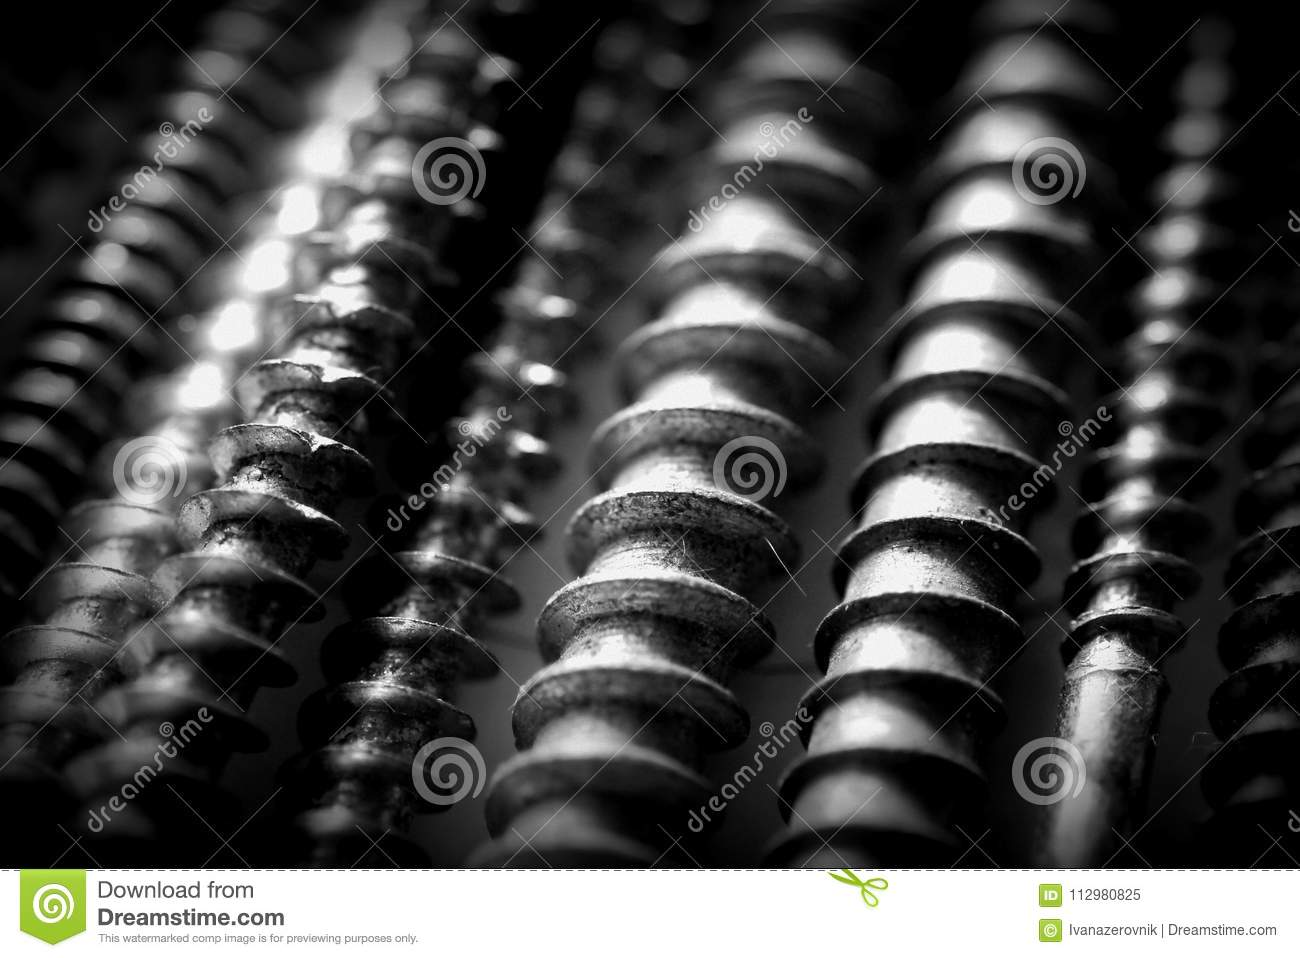 Bunch of an old metal screws fills background